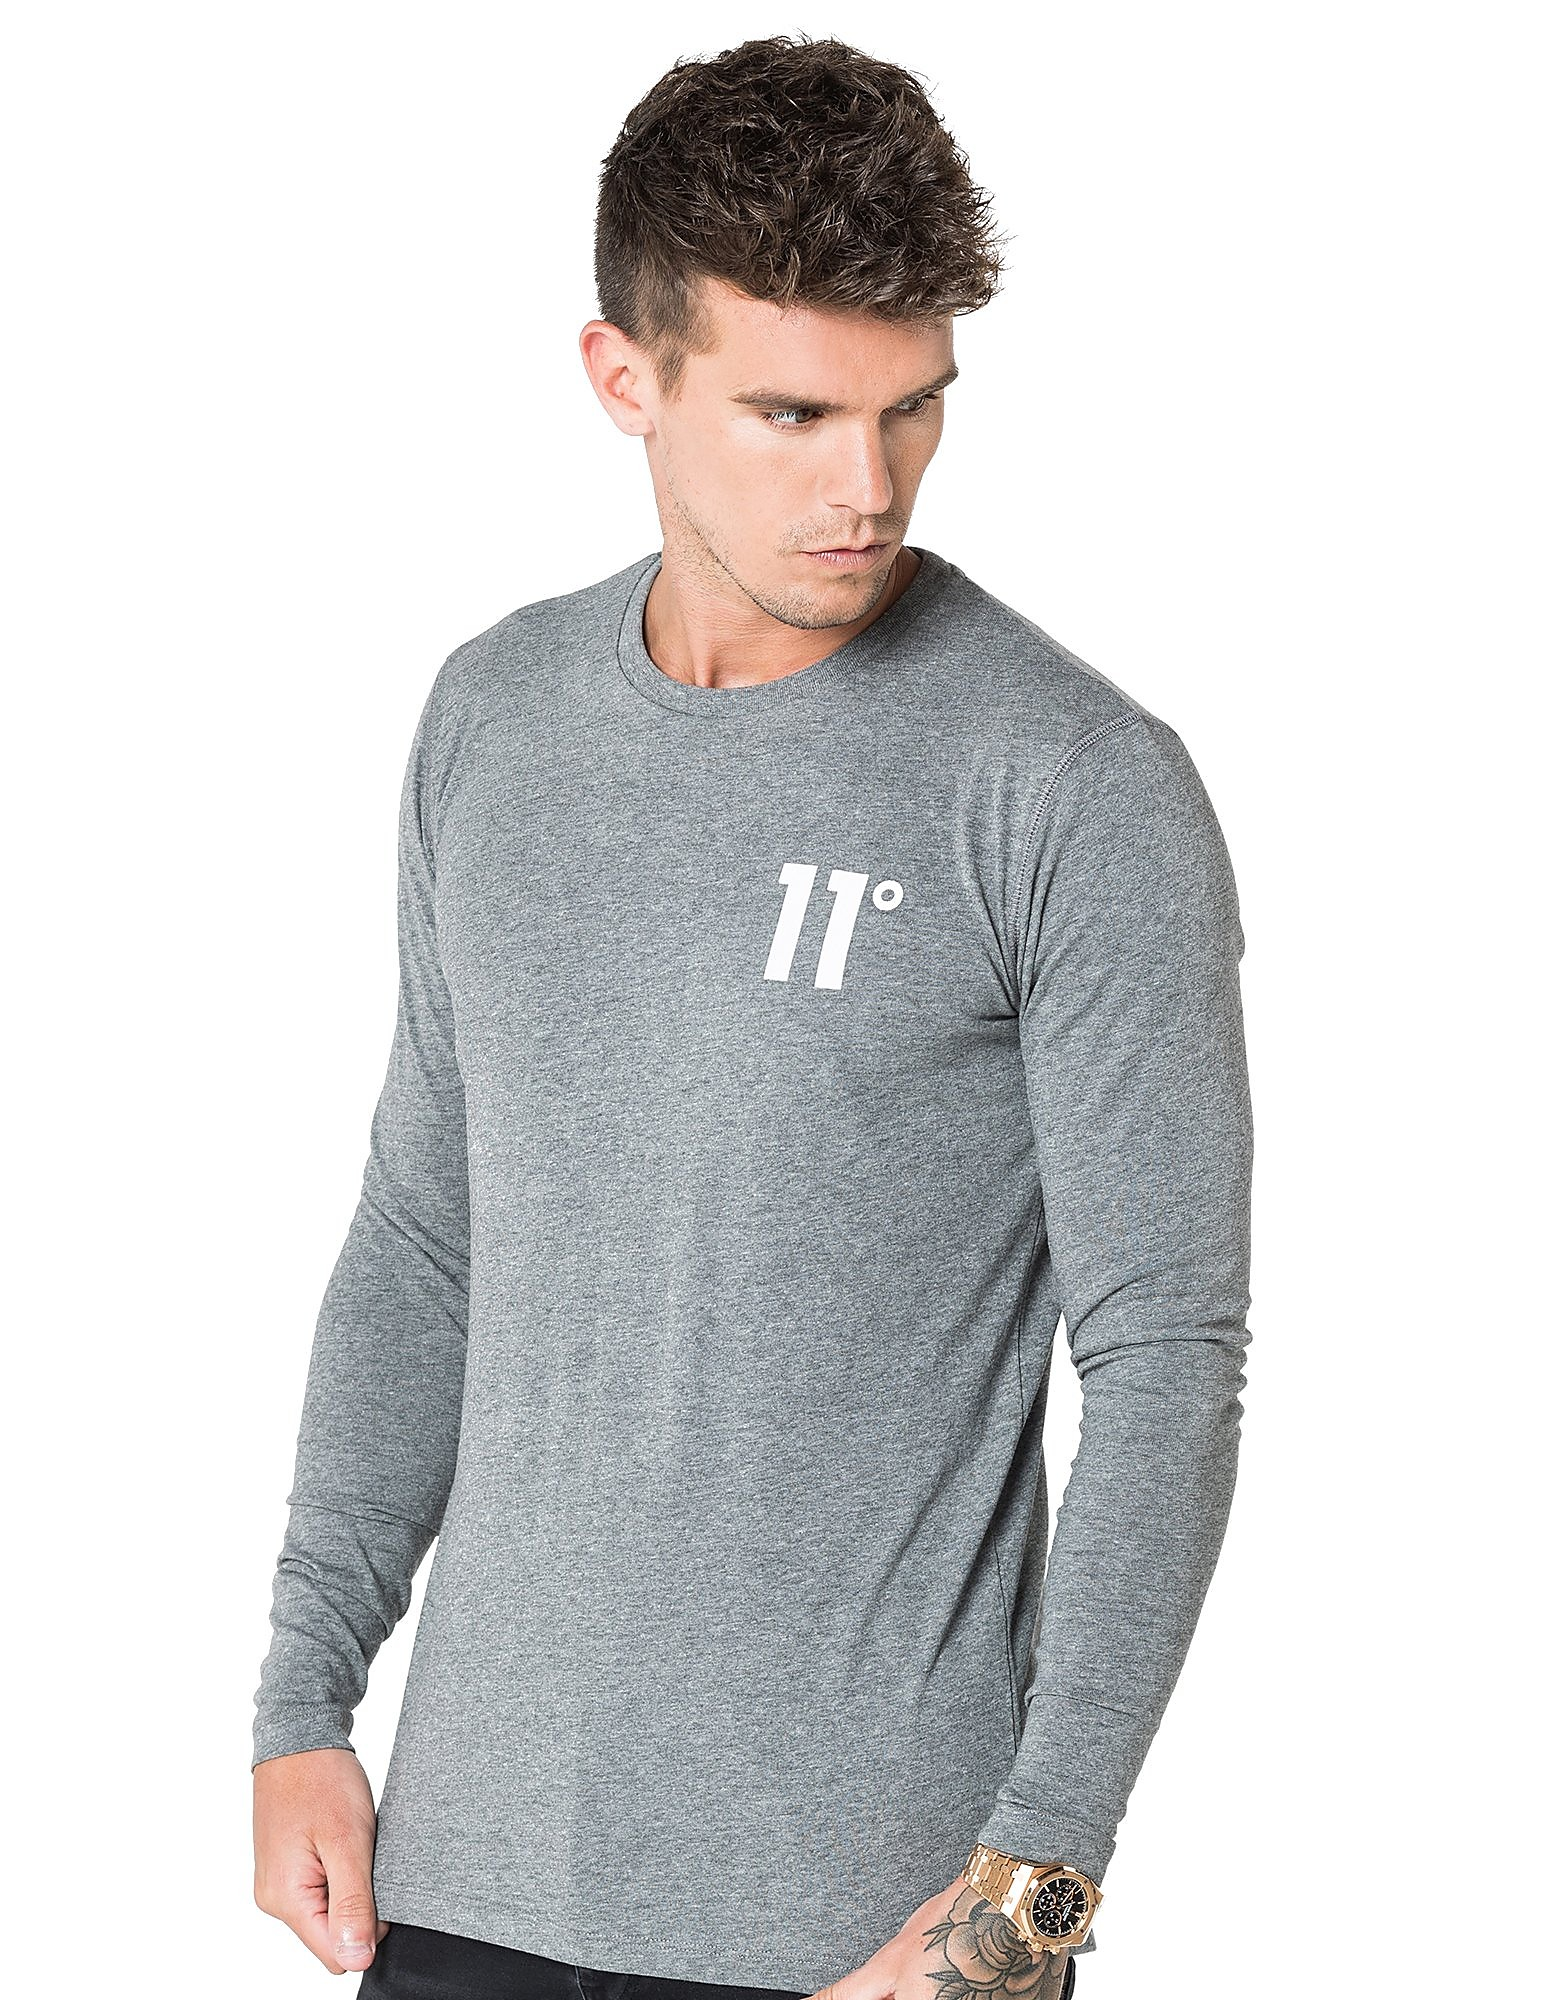 11 Degrees Core Long Sleeve T-Shirt